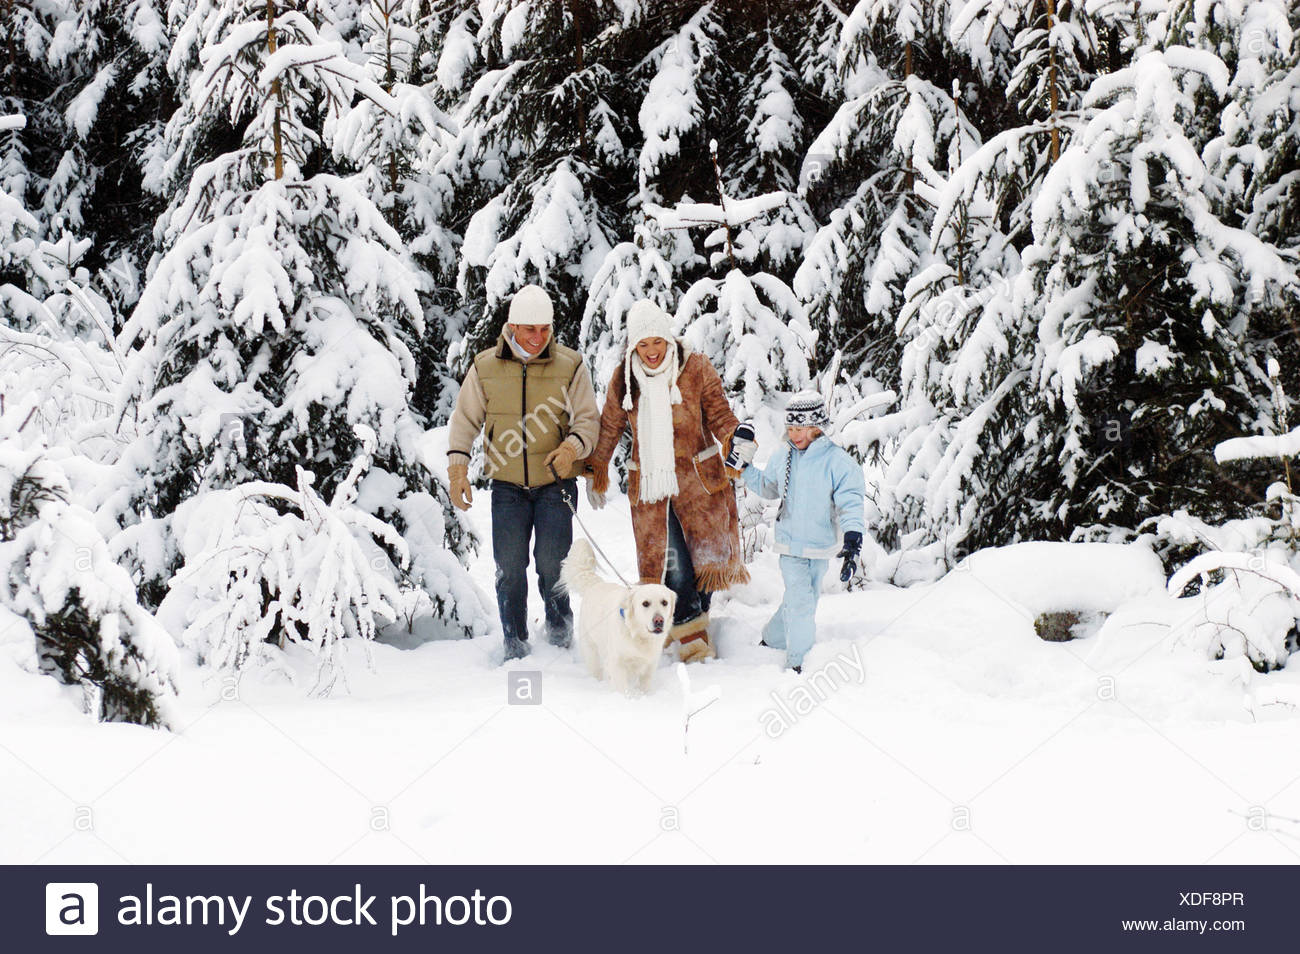 Austria, Salzburger Land, parents and son (6-7) walking in snow with dog - Stock Image